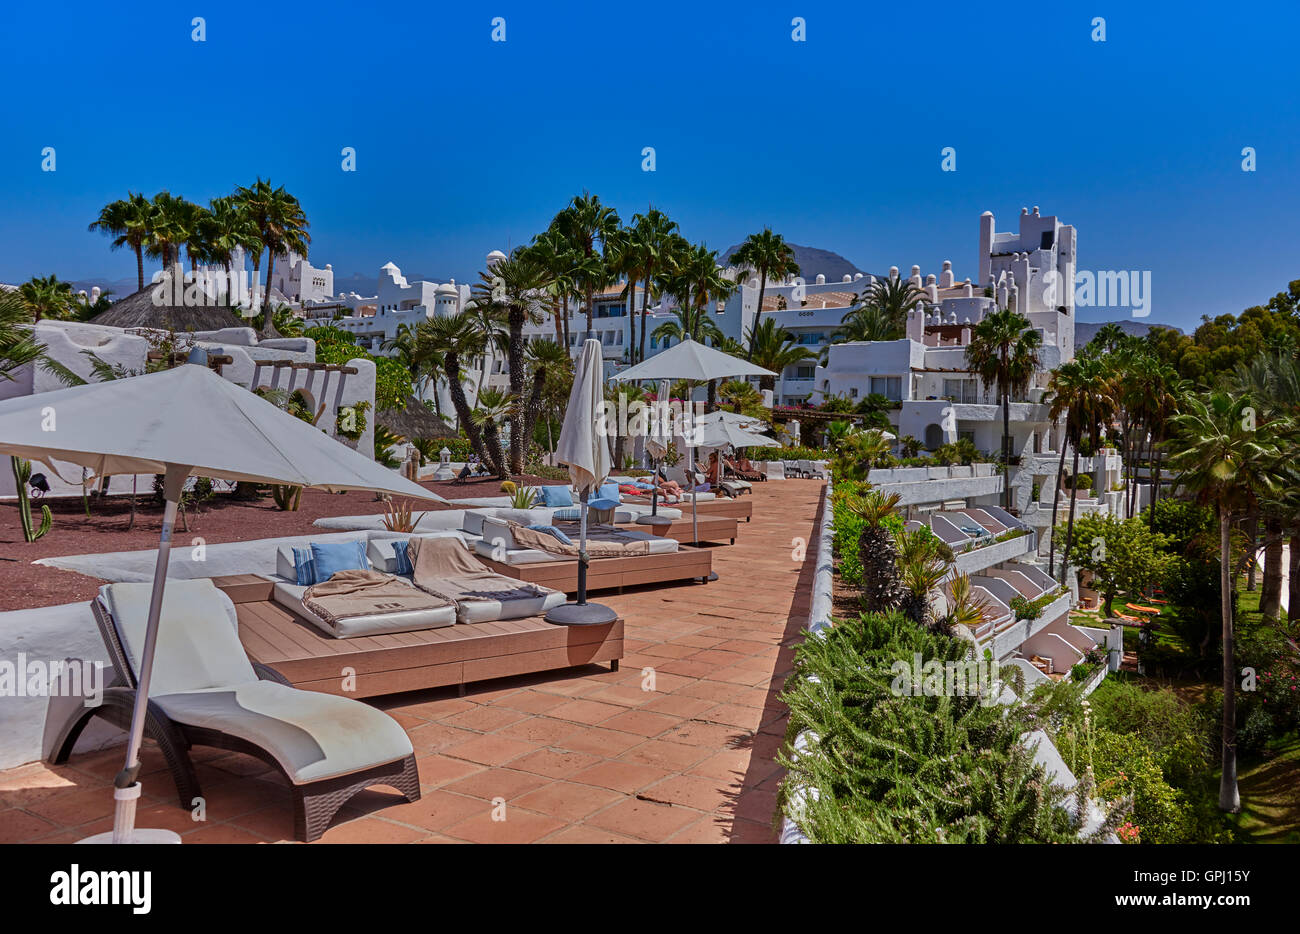 Hotel jardin tropical costa adeje tenerife stock photo for Jardin tropical costa adeje